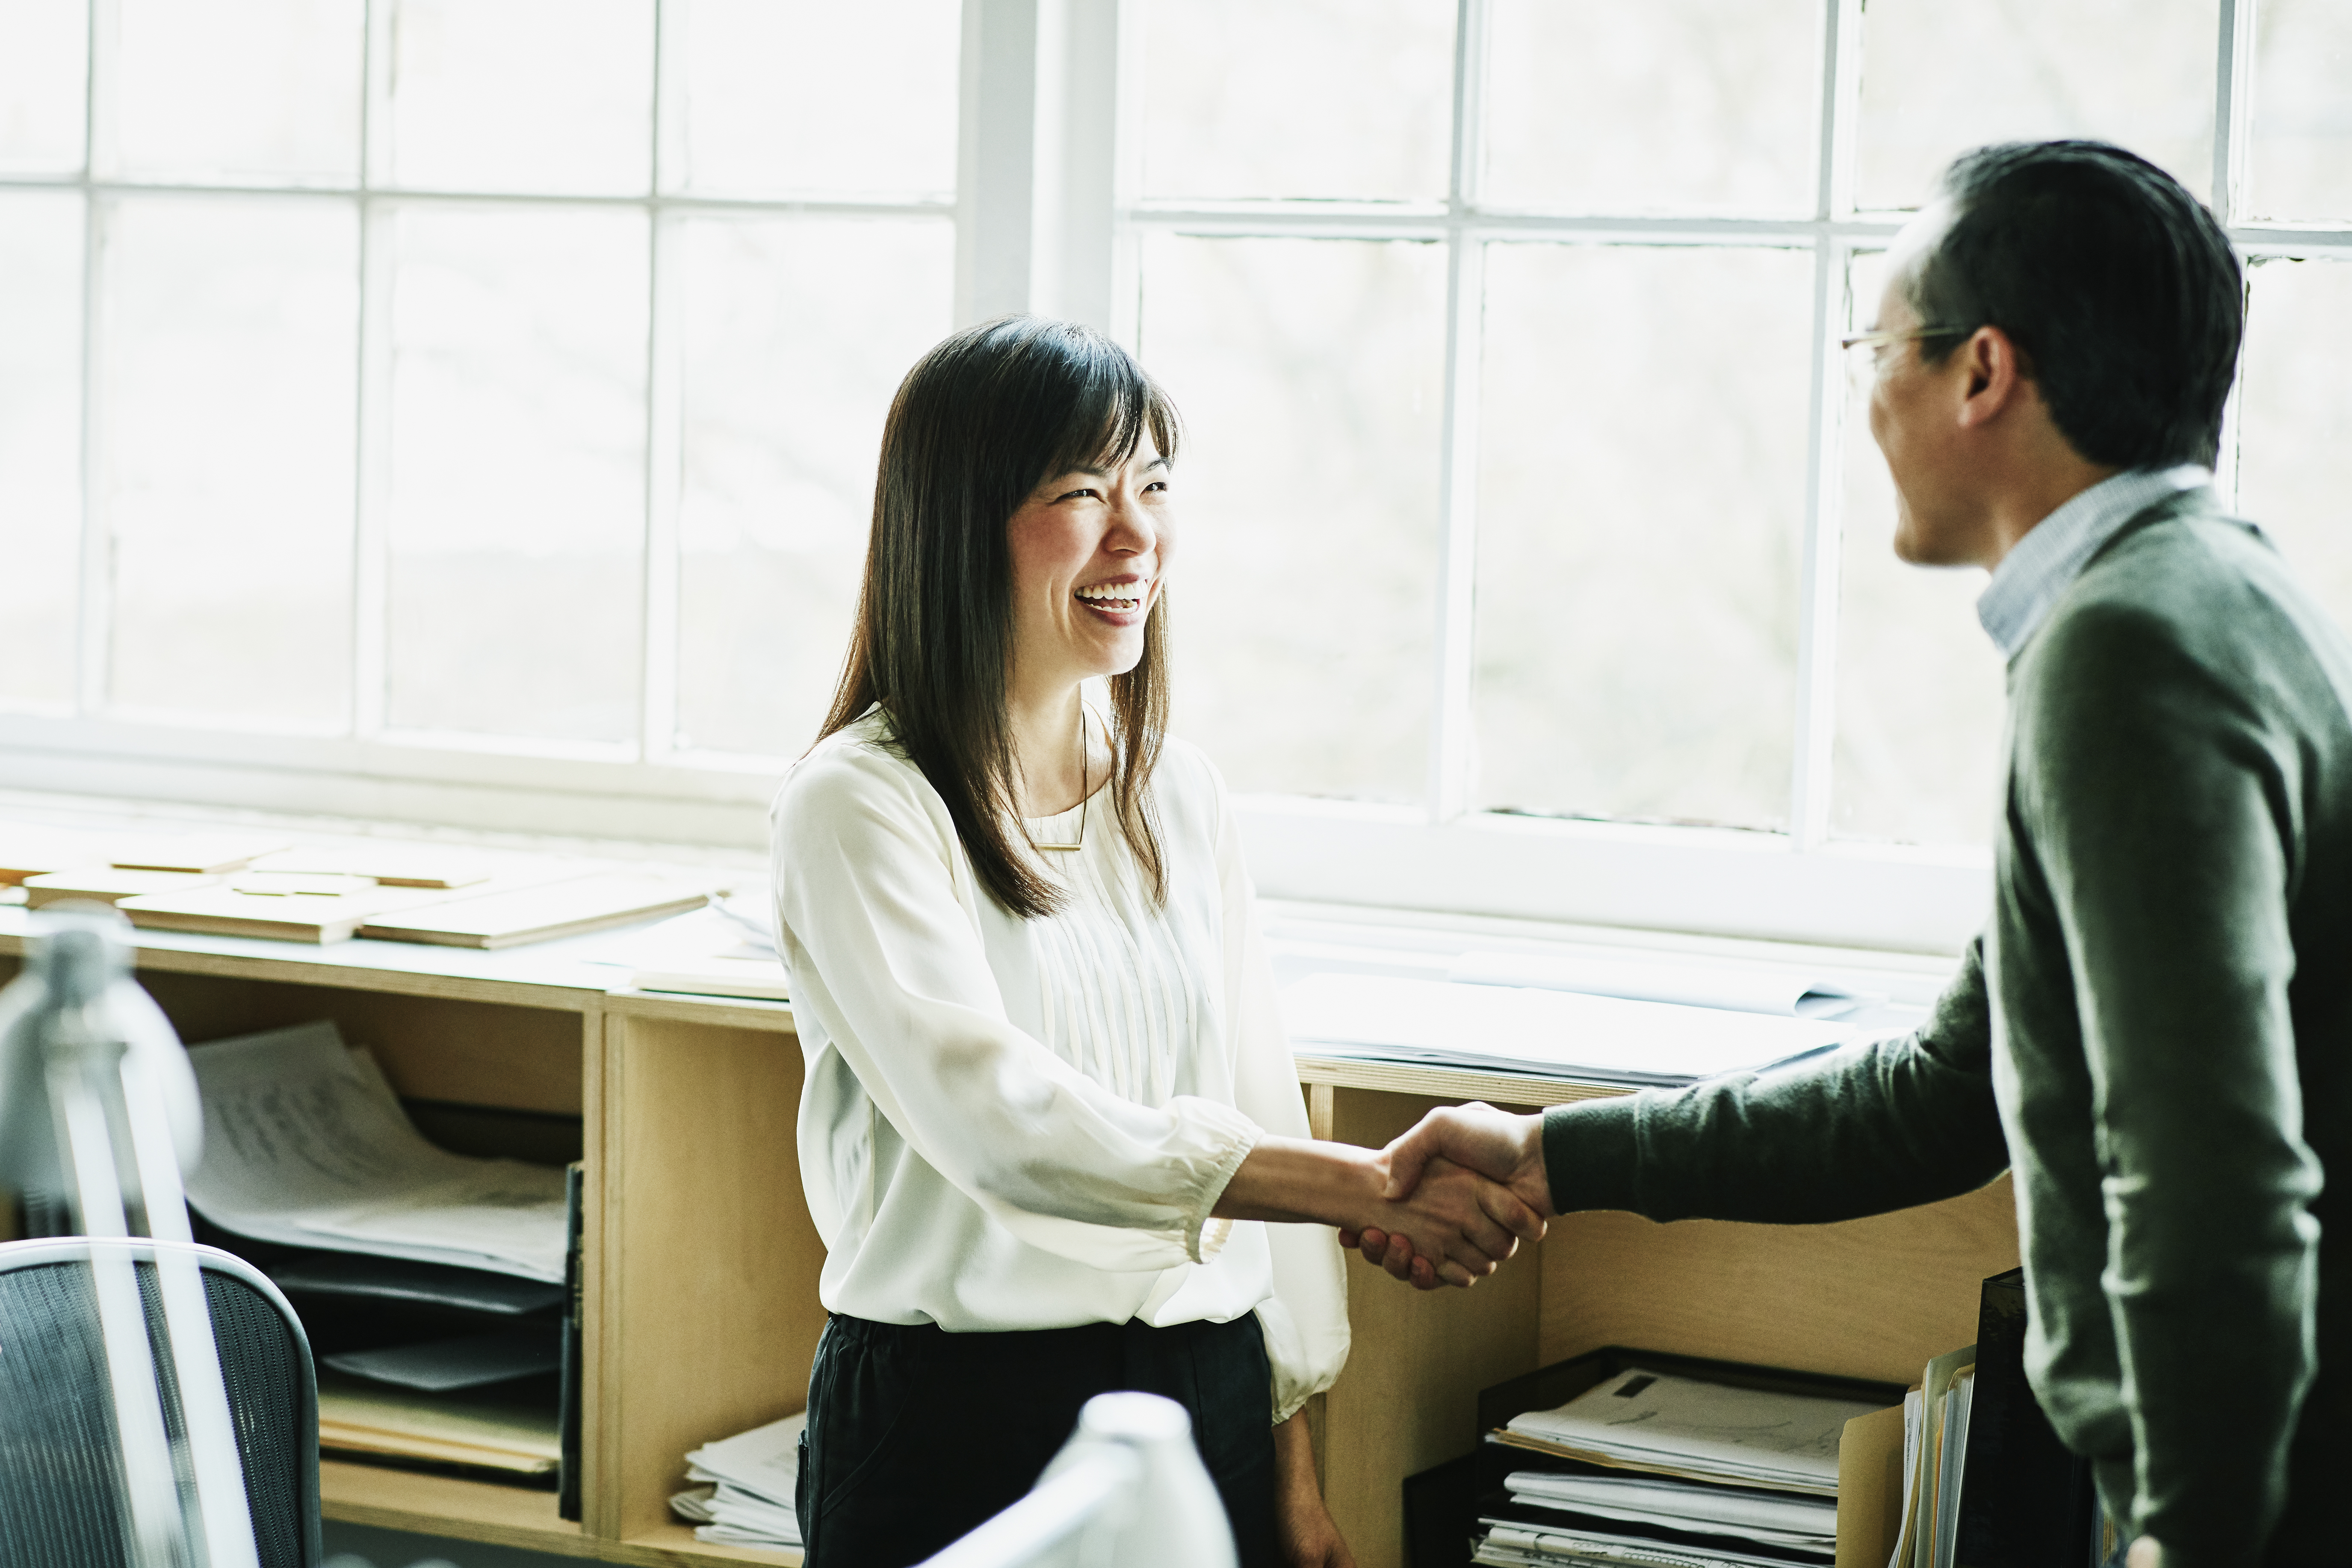 Smiling businesswoman shaking hands with client in design studio